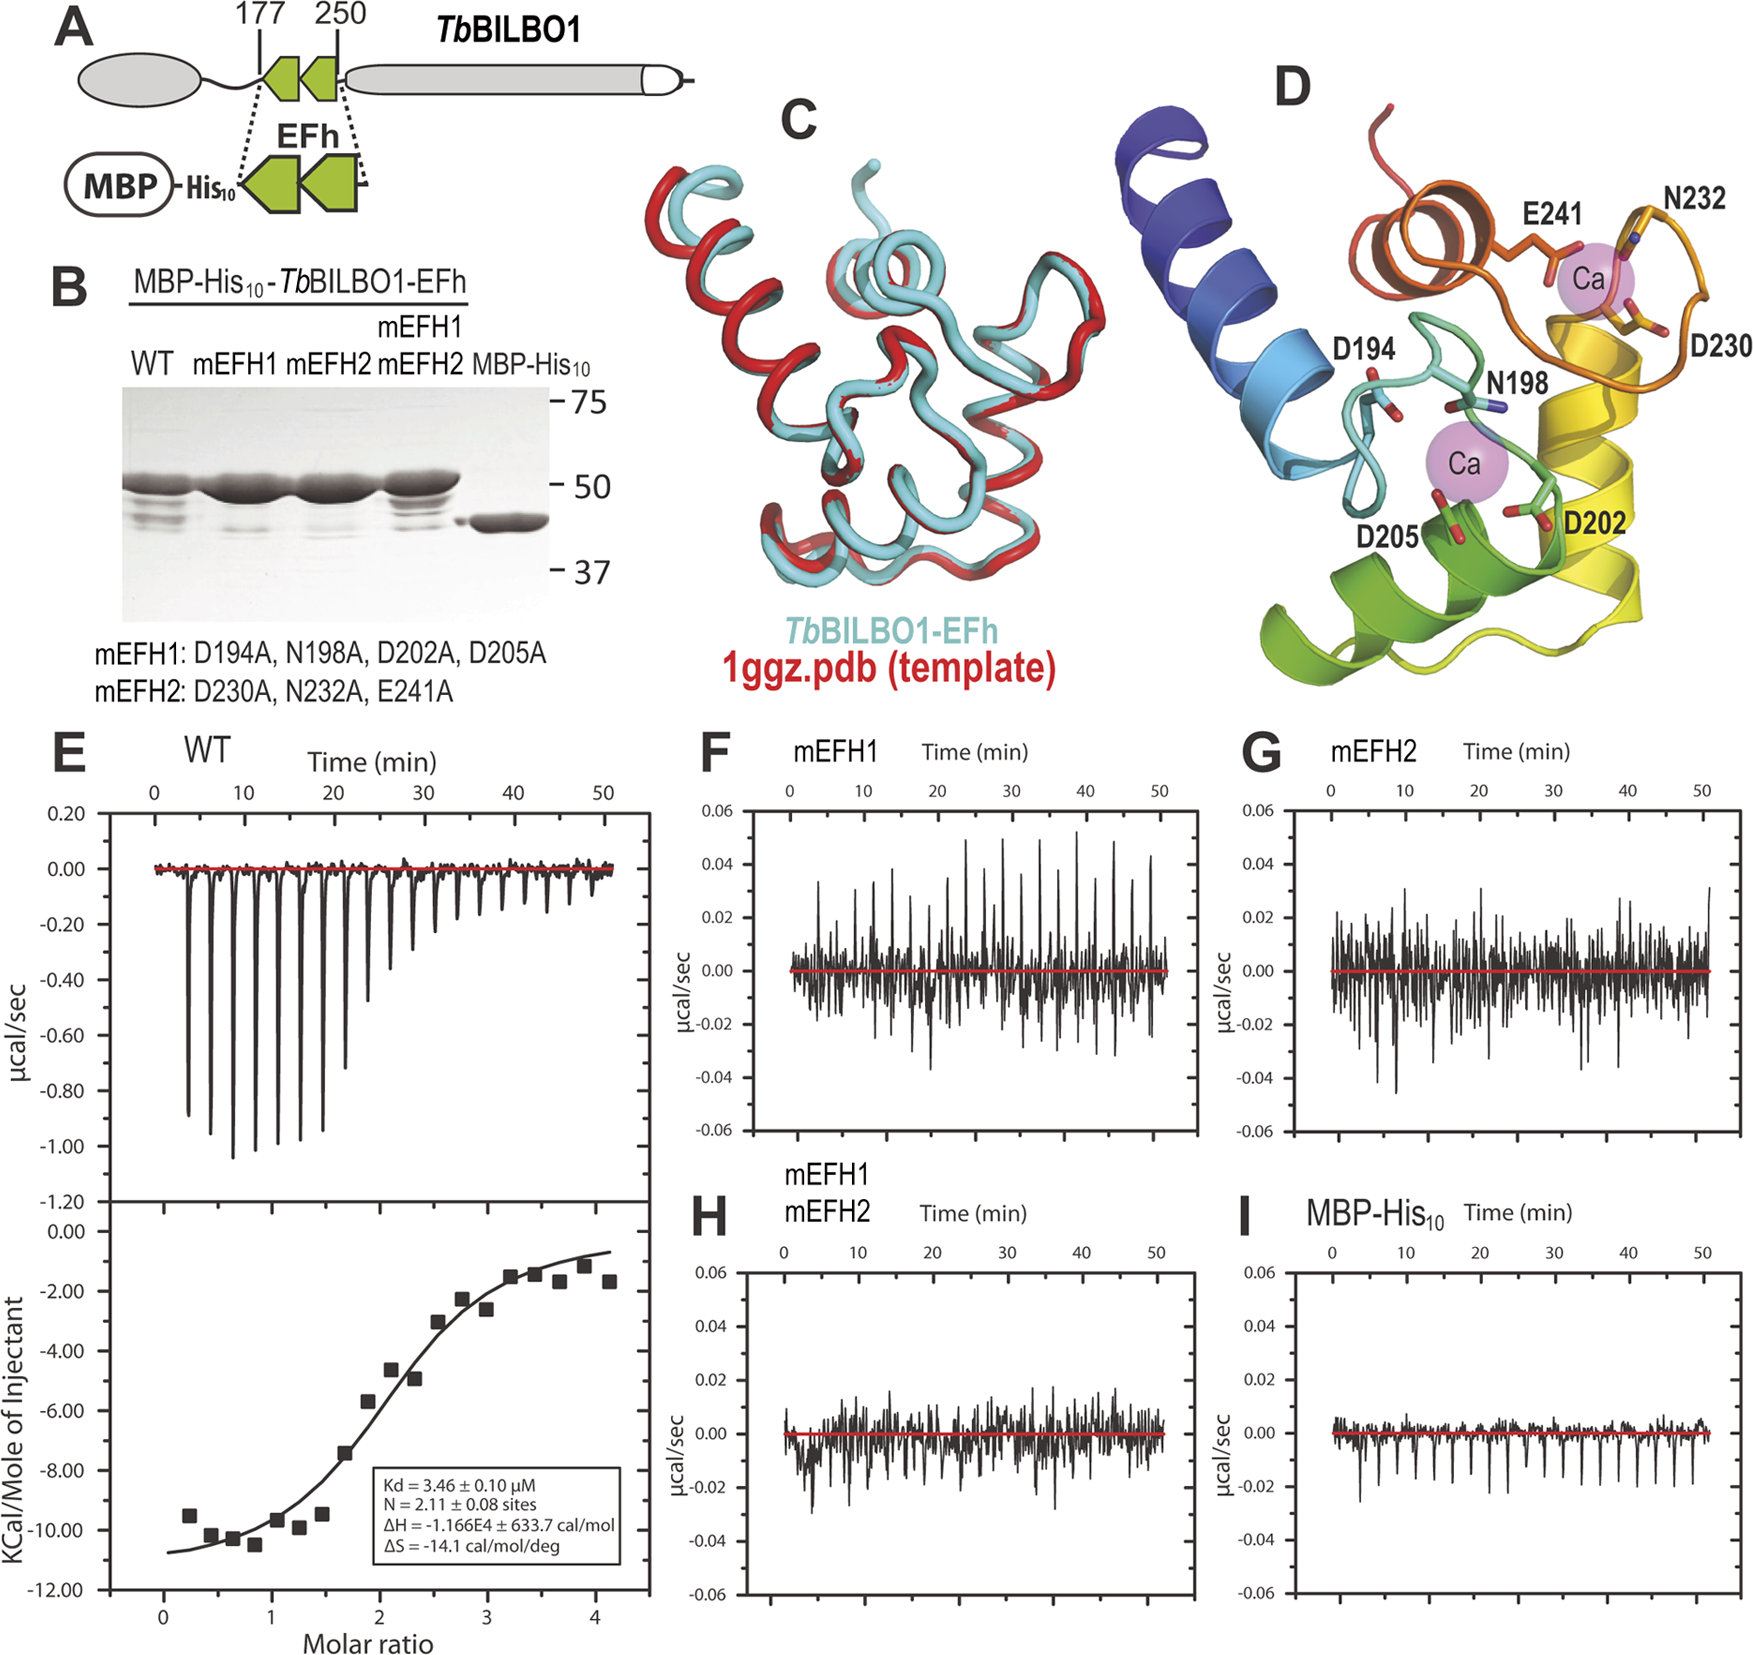 The conserved residues in the loops of the EF-hand domains are required for calcium binding.